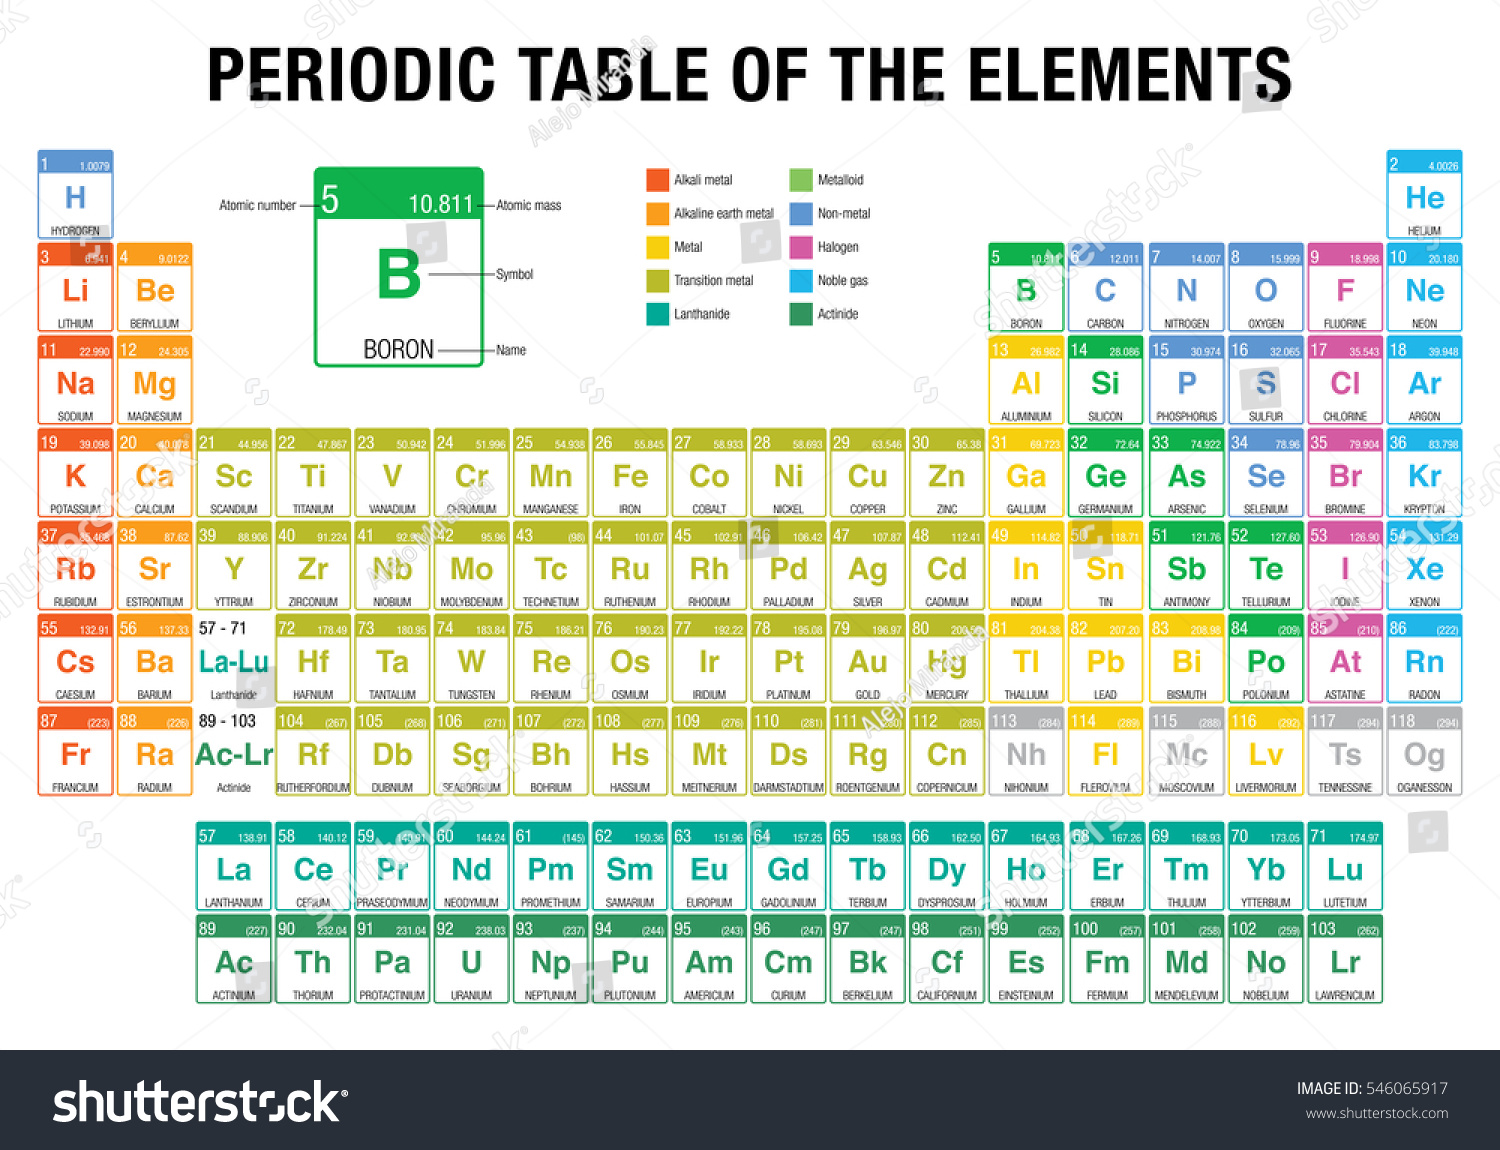 Periodic table elements 4 new elements stock vector 546065917 periodic table of the elements with the 4 new elements nihonium moscovium tennessine gamestrikefo Choice Image